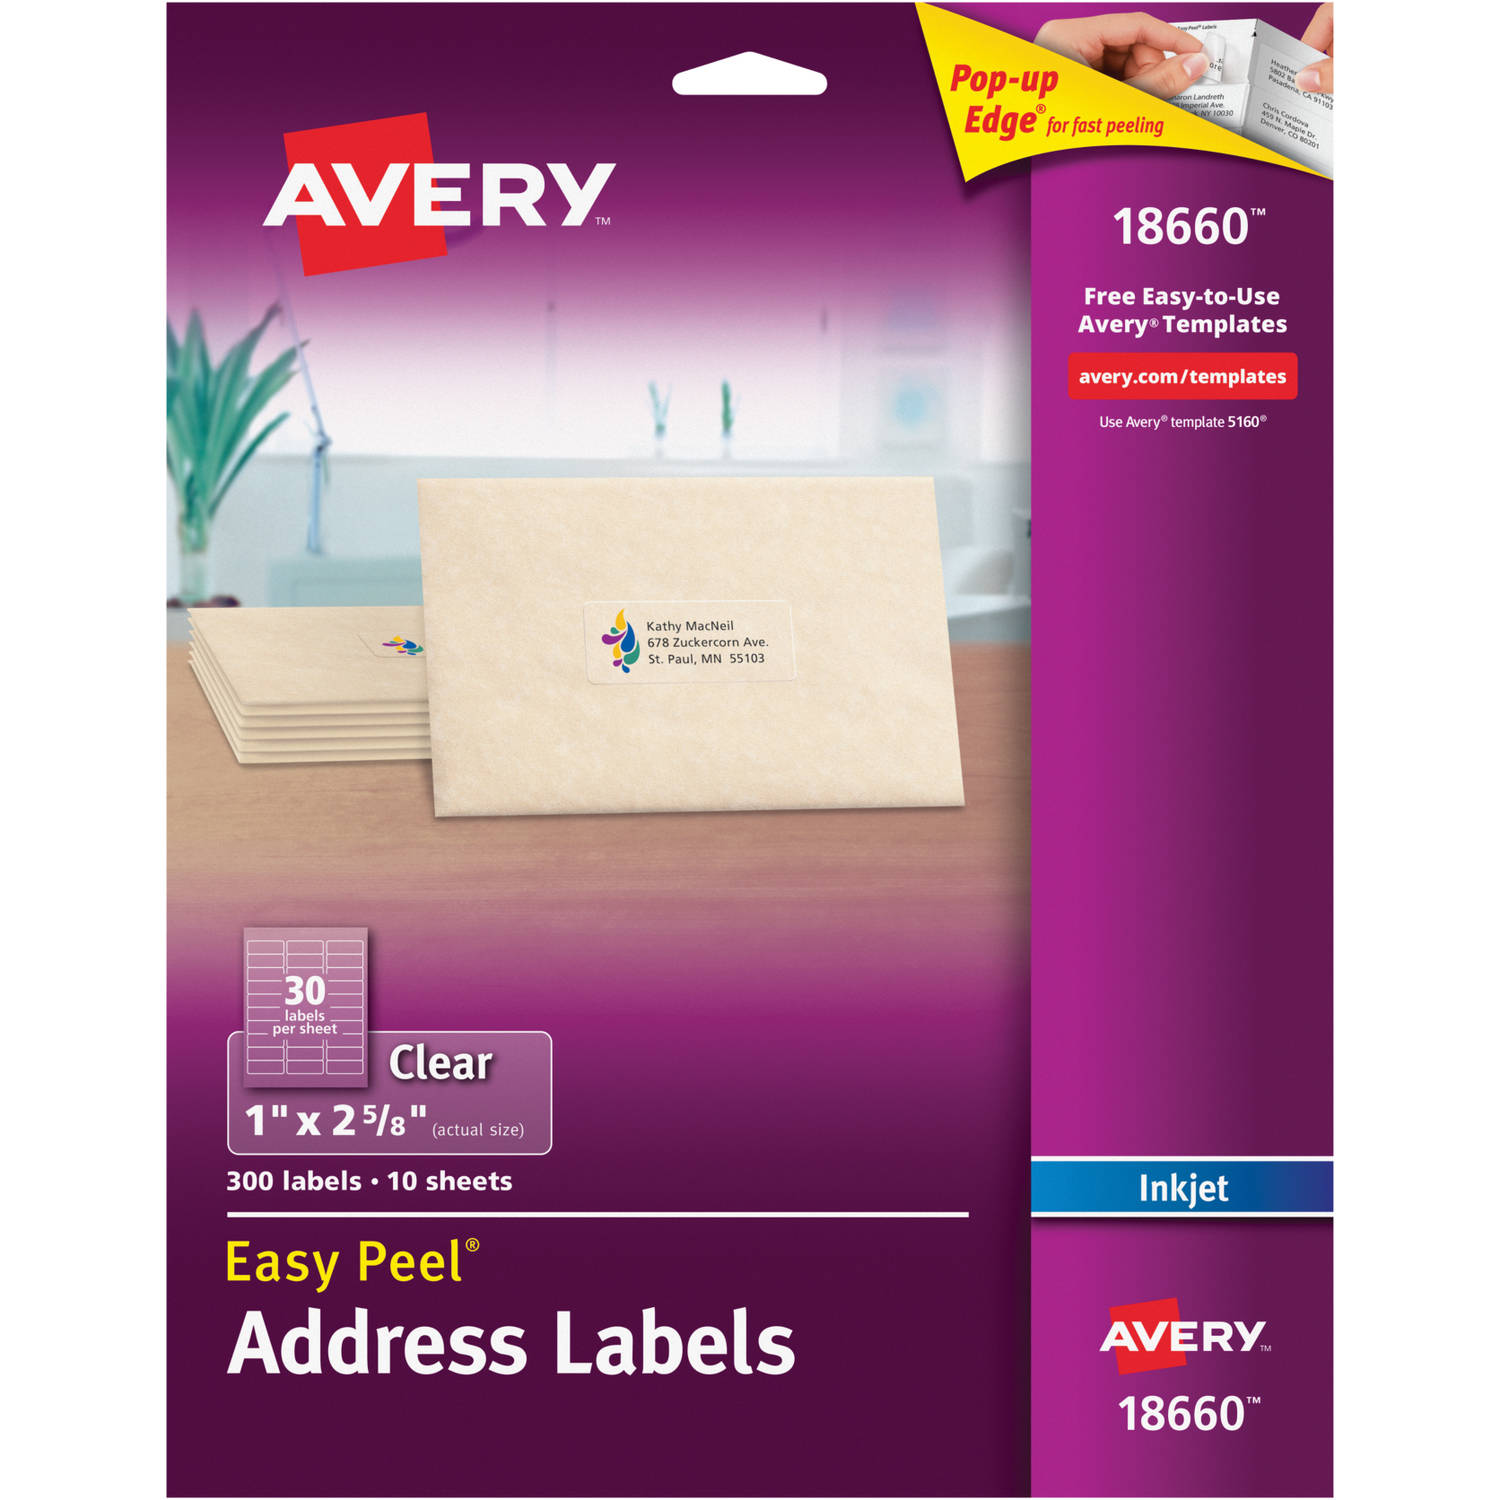 """Avery Easy Peel Address Labels for Inkjet Printers, Clear, 1"""" x 2-5/8"""", 300 Count"""